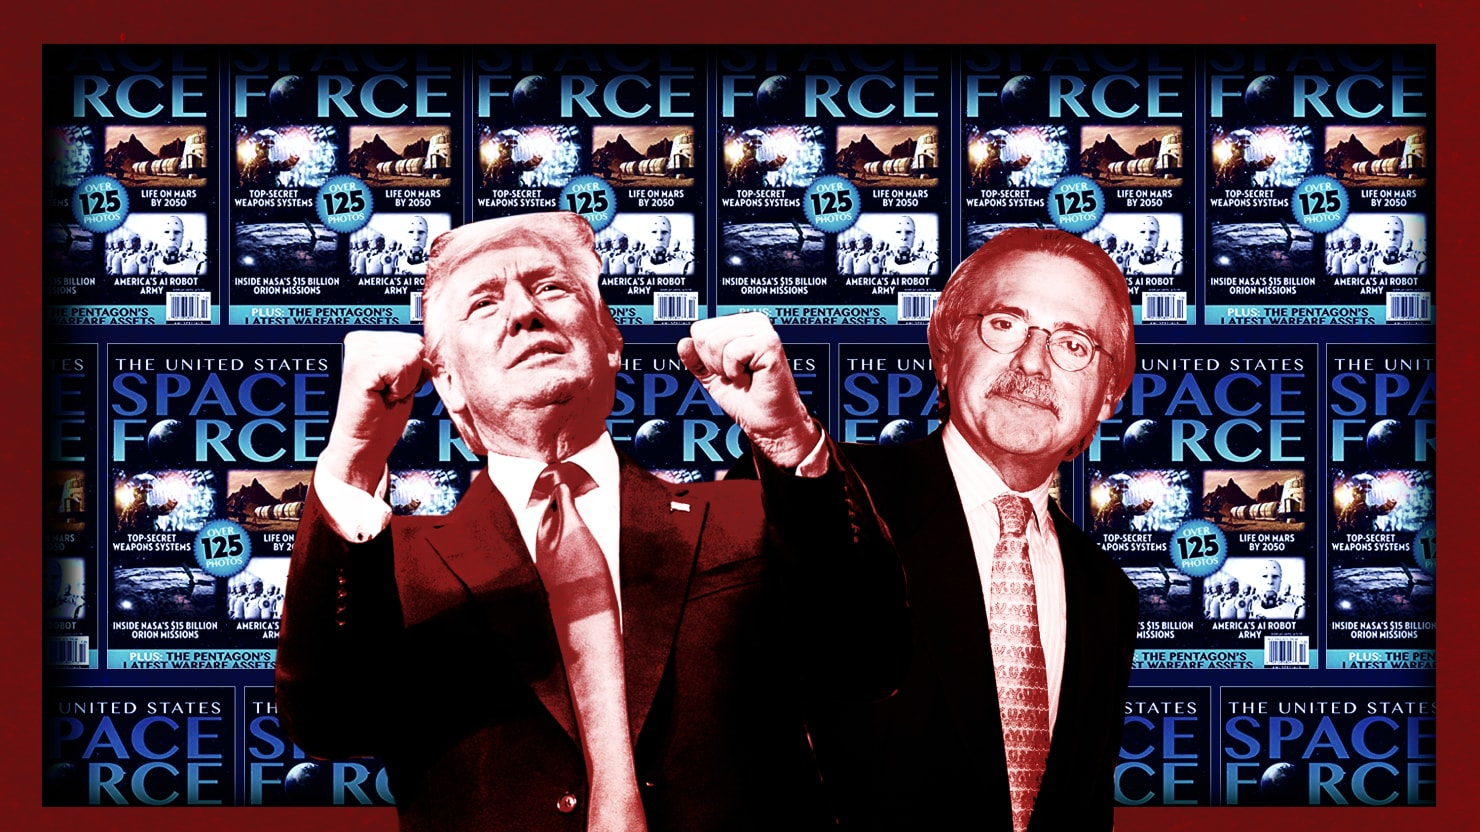 illustration of american media inc space force magazine cover in background with donald trump and david pecker ceo nasa mars aliens pseudoscience debunker